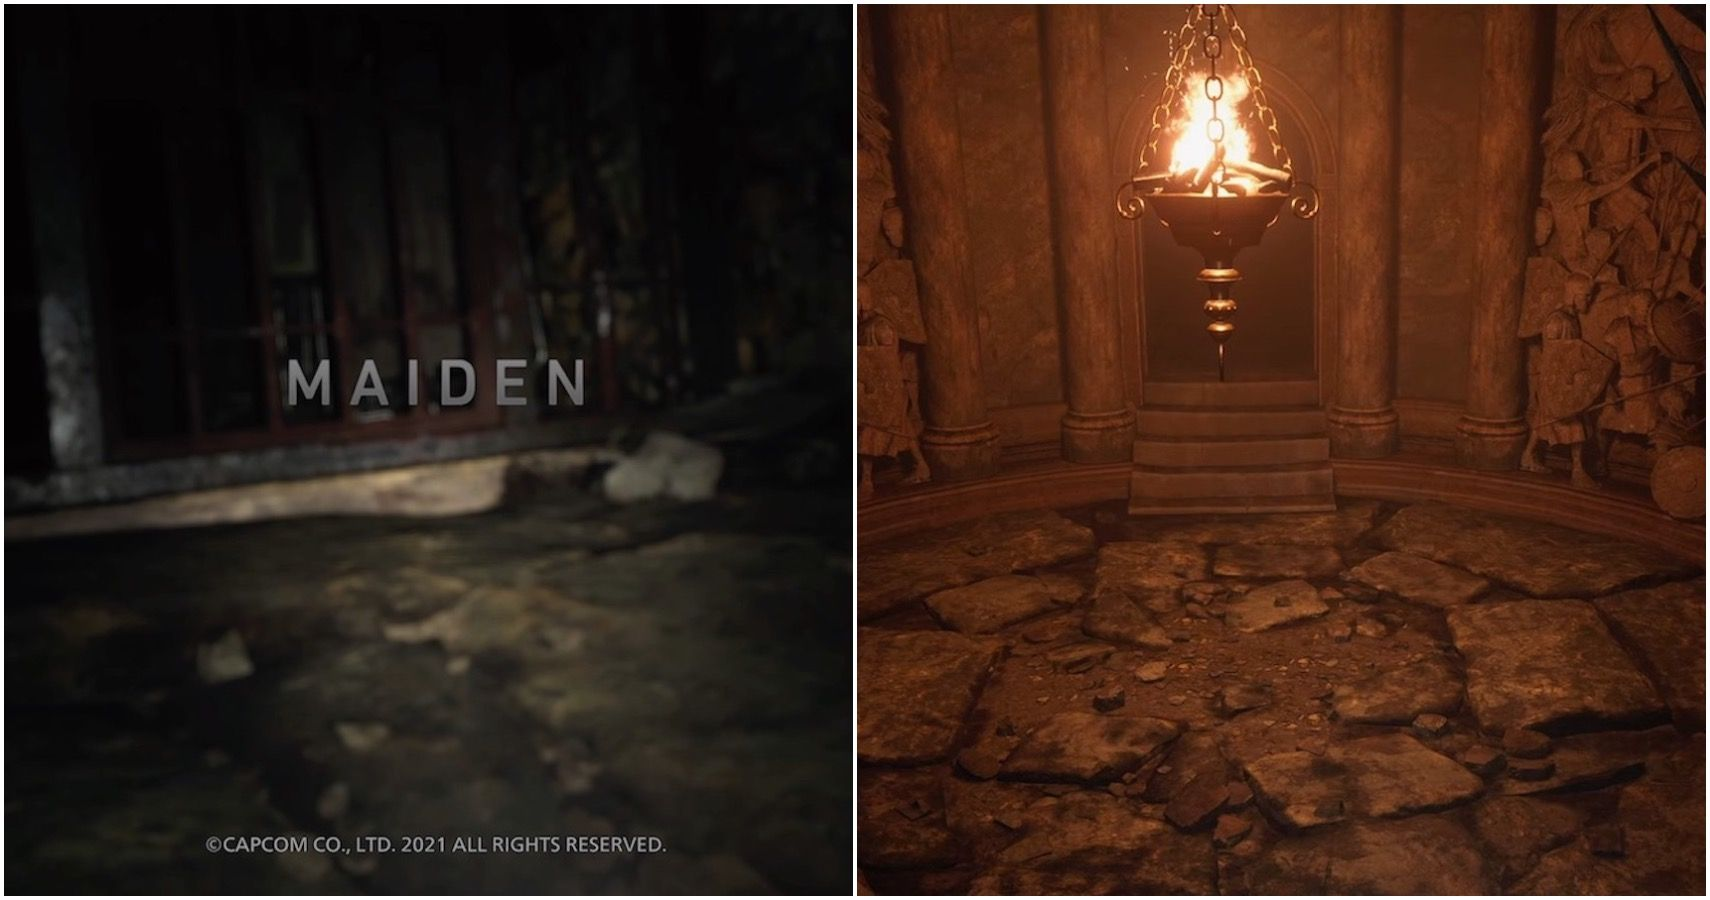 A Step By Step Guide Through Maiden, The PS5 Exclusive Resident Evil: Village Demo